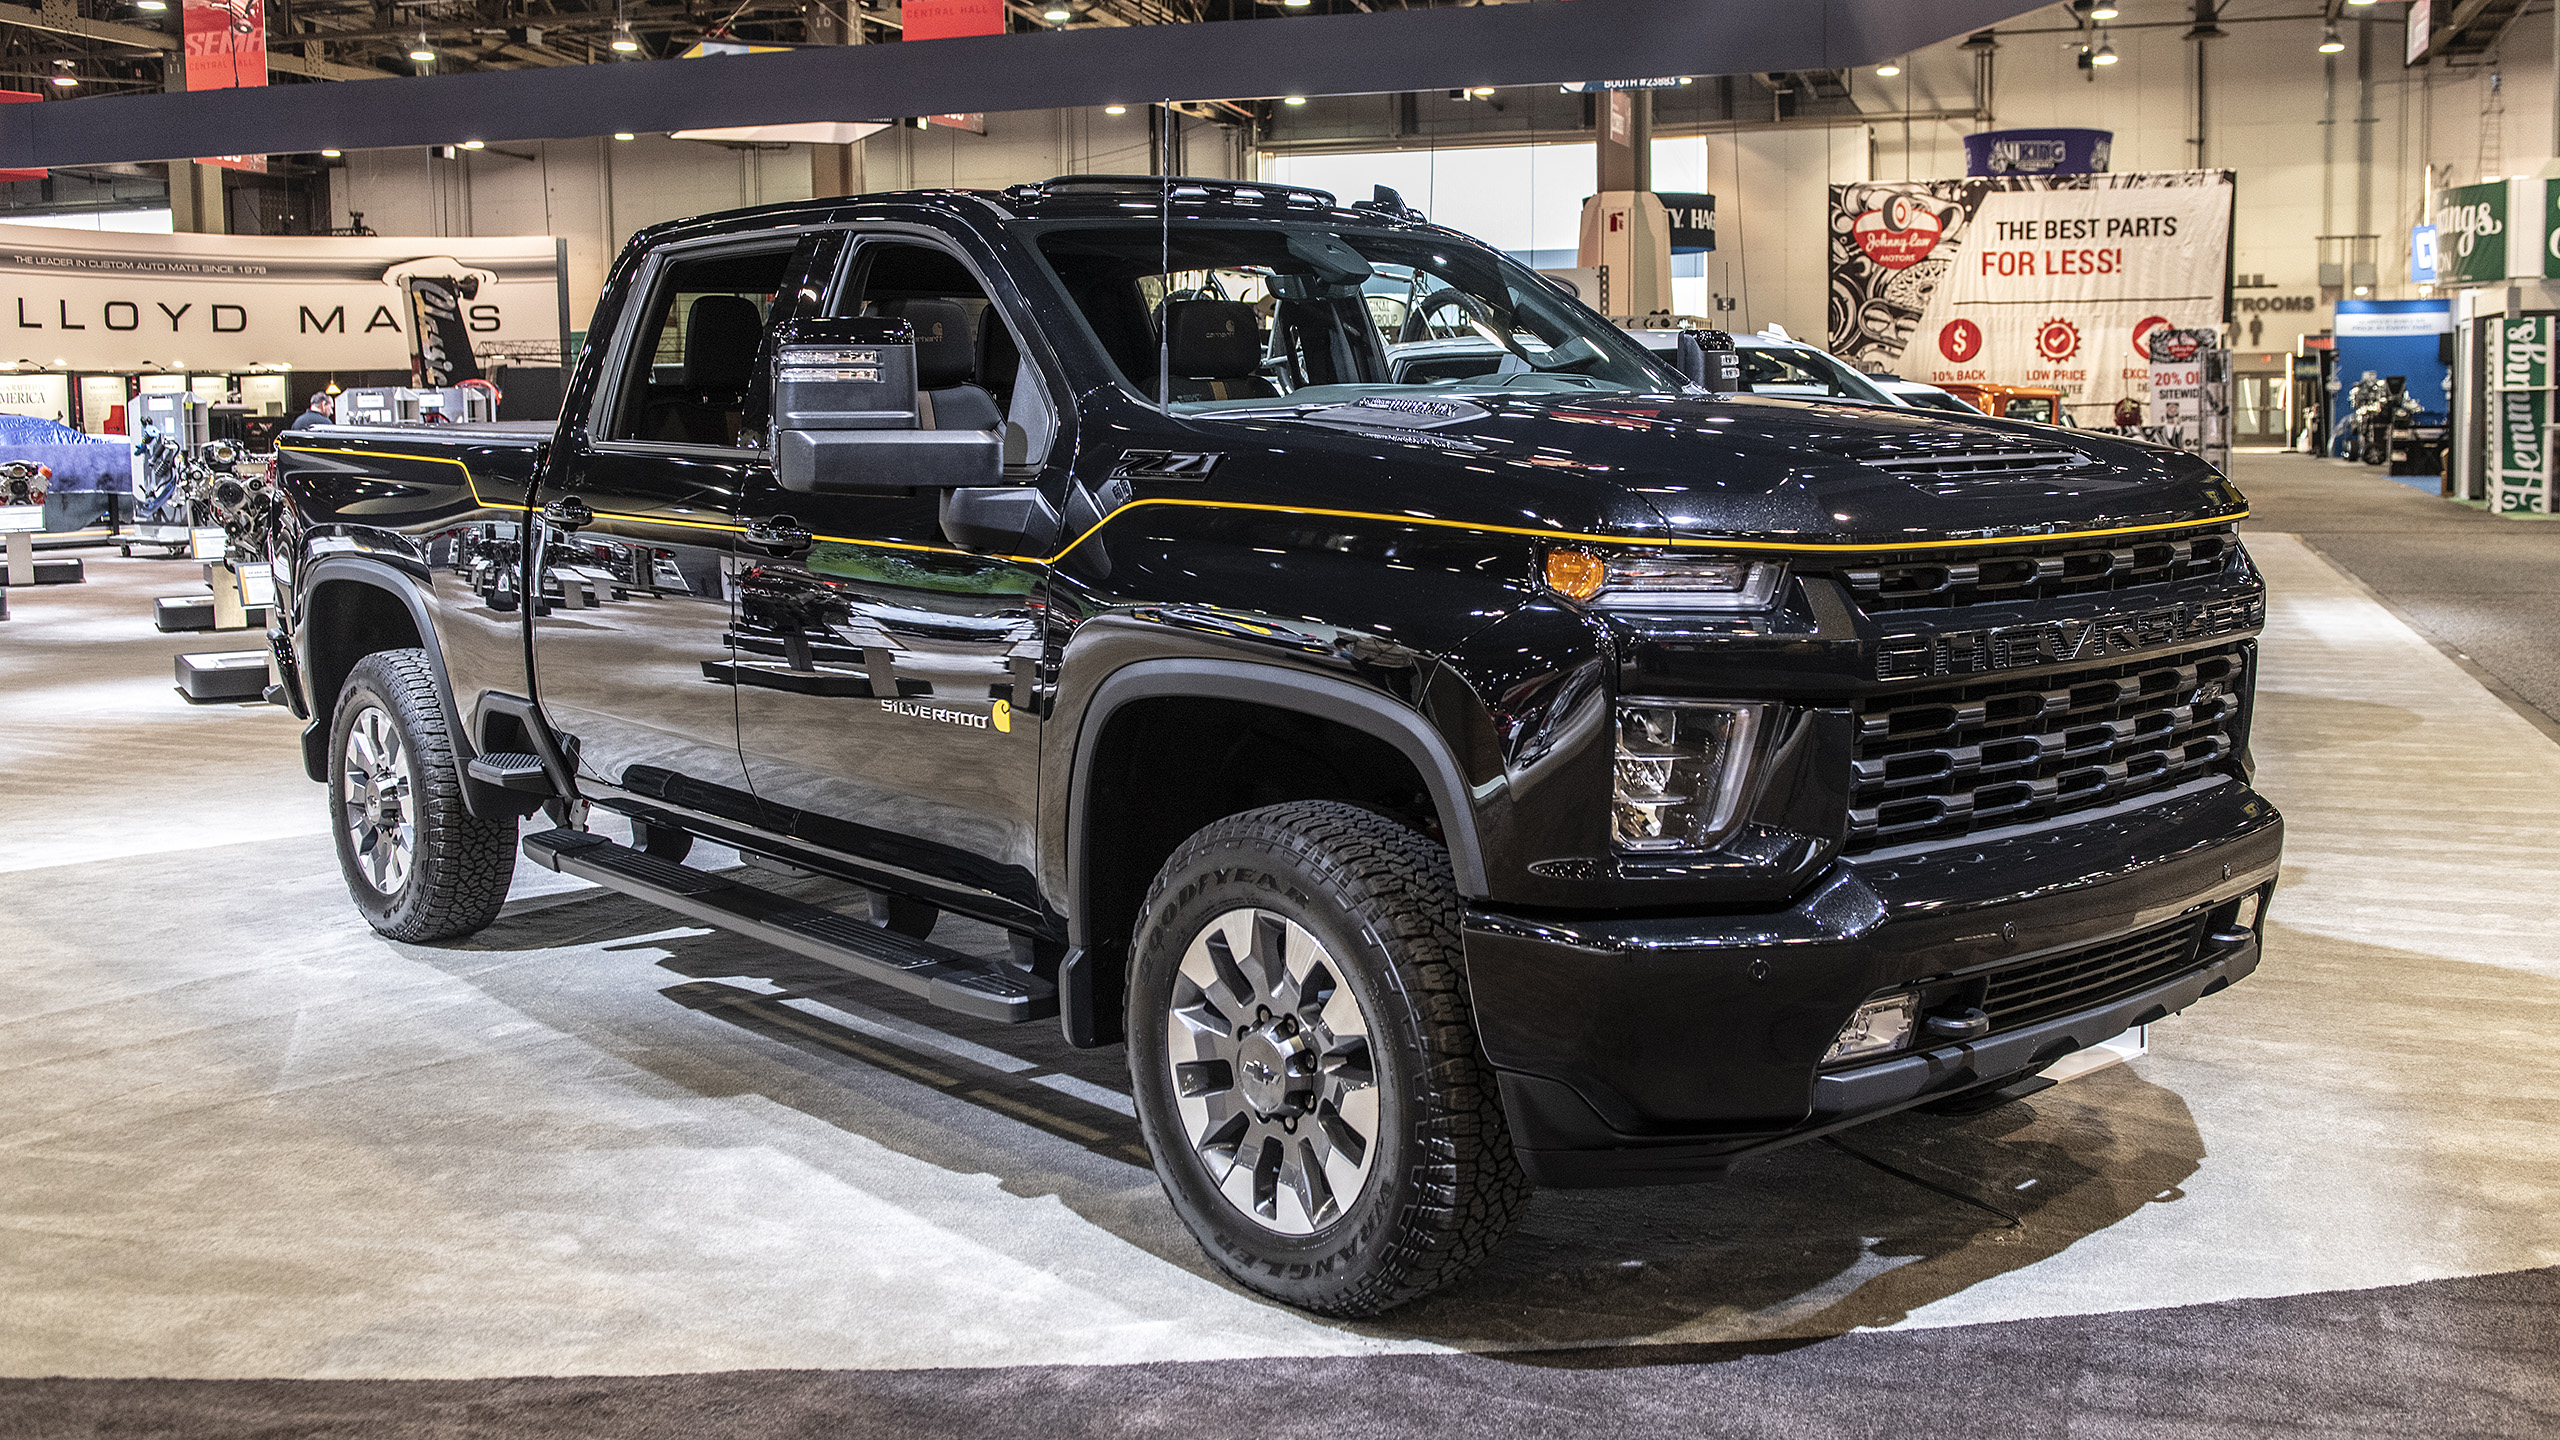 2021 Silverado Hd Carhartt Special Edition: Sema 2019 Photo Cost Of A 2021 Chevy Silverado Incentives, Inside, Images